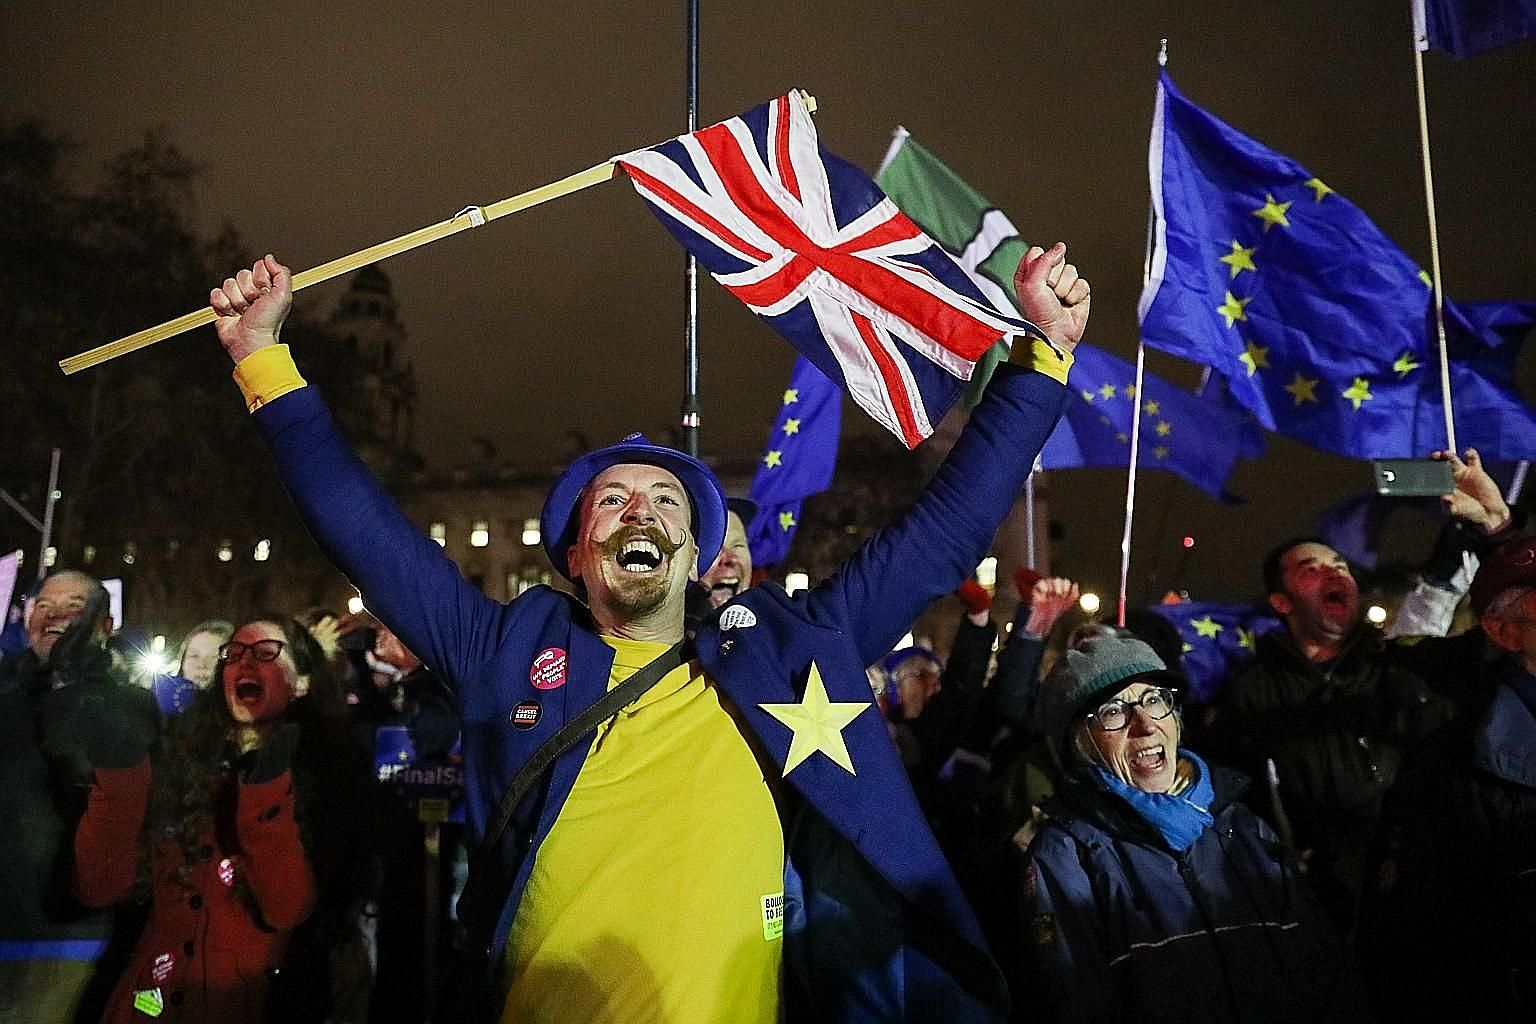 An anti-Brexit demonstrator reacting to the result of the British Parliament's vote on the Brexit deal in London on Tuesday. Pro-Brexit activists were similarly buoyed by the defeat of Prime Minister Theresa May's deal, but for different reasons - th